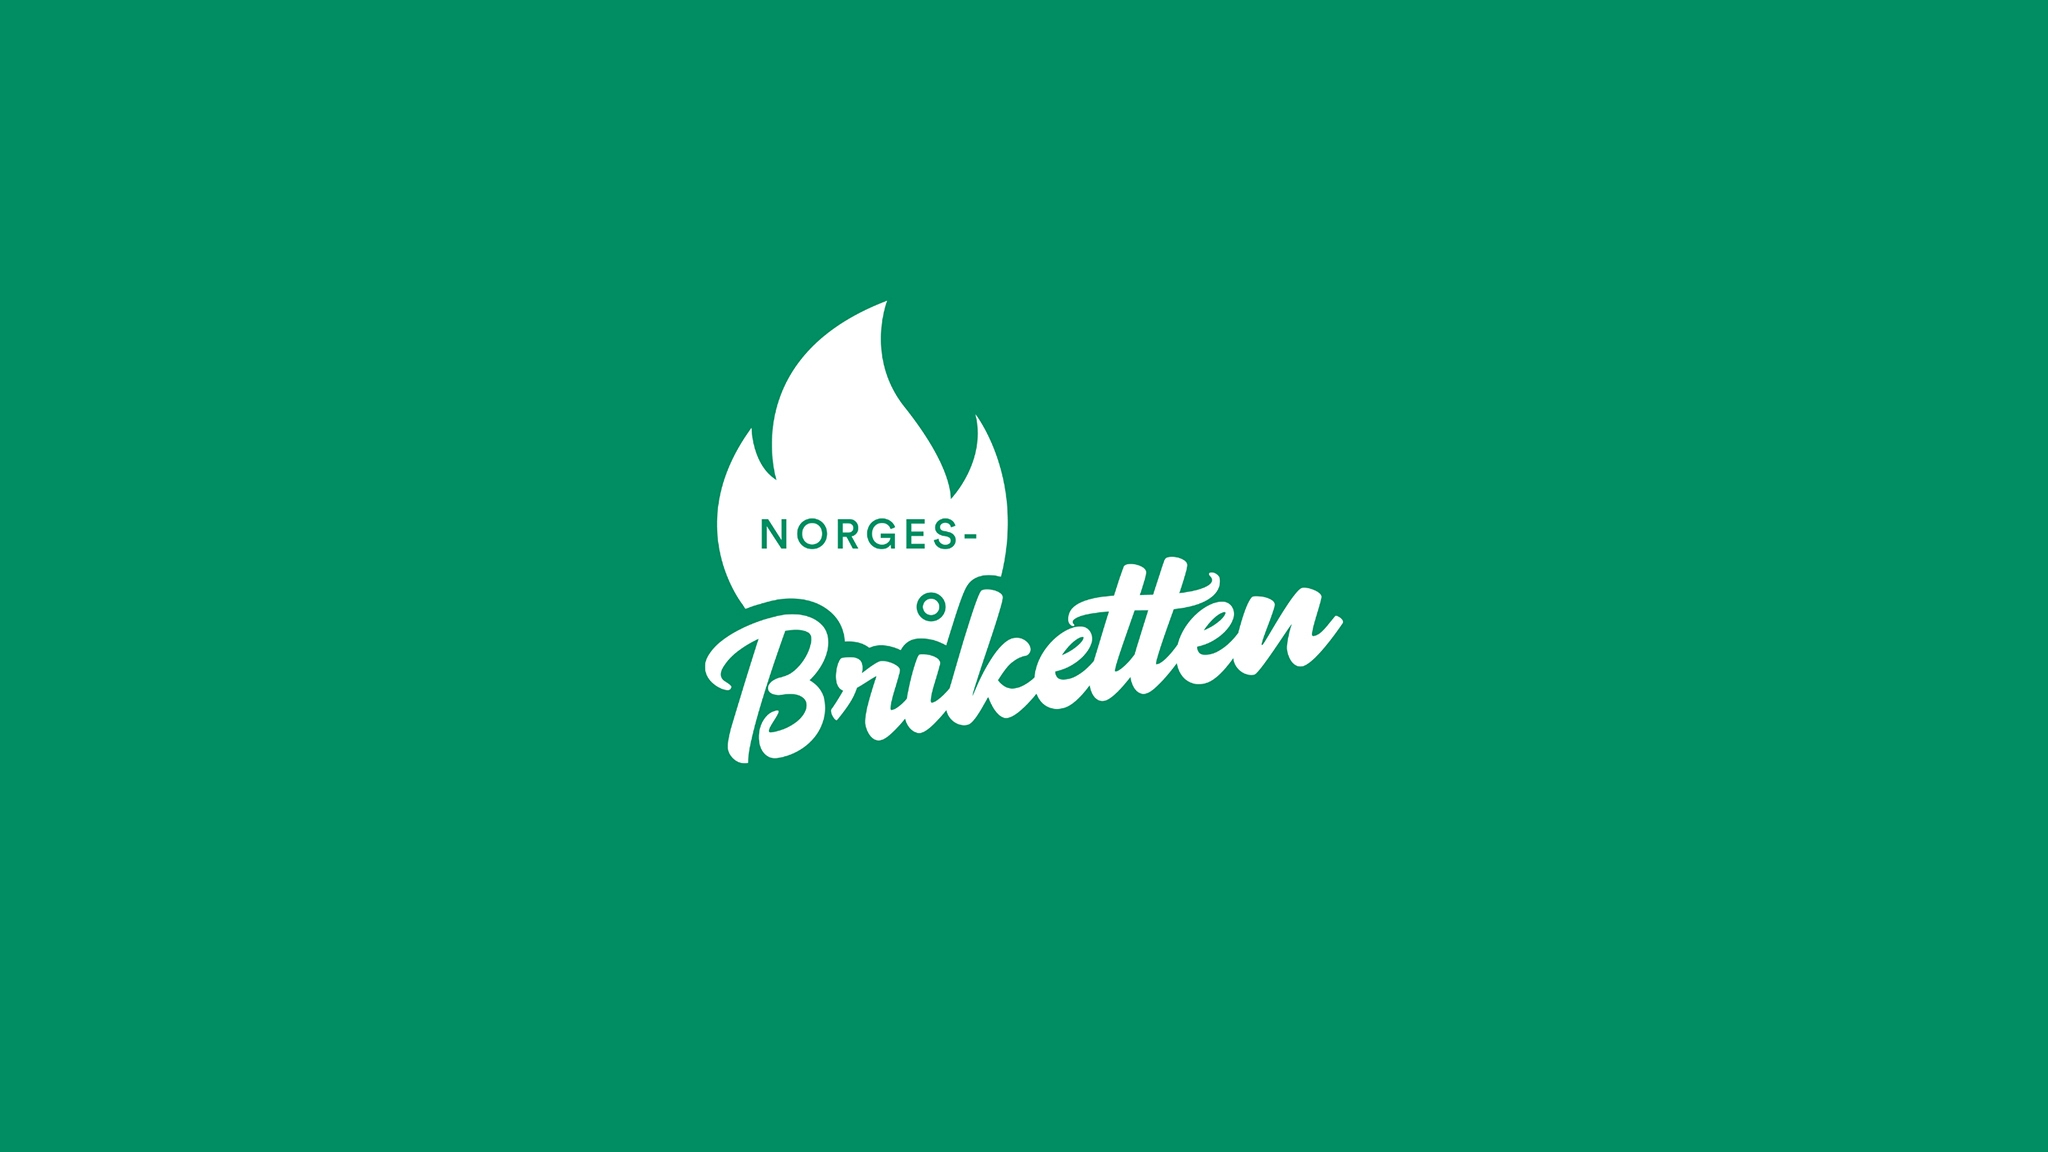 Norges Briketten (@norgesbriketten) Cover Image